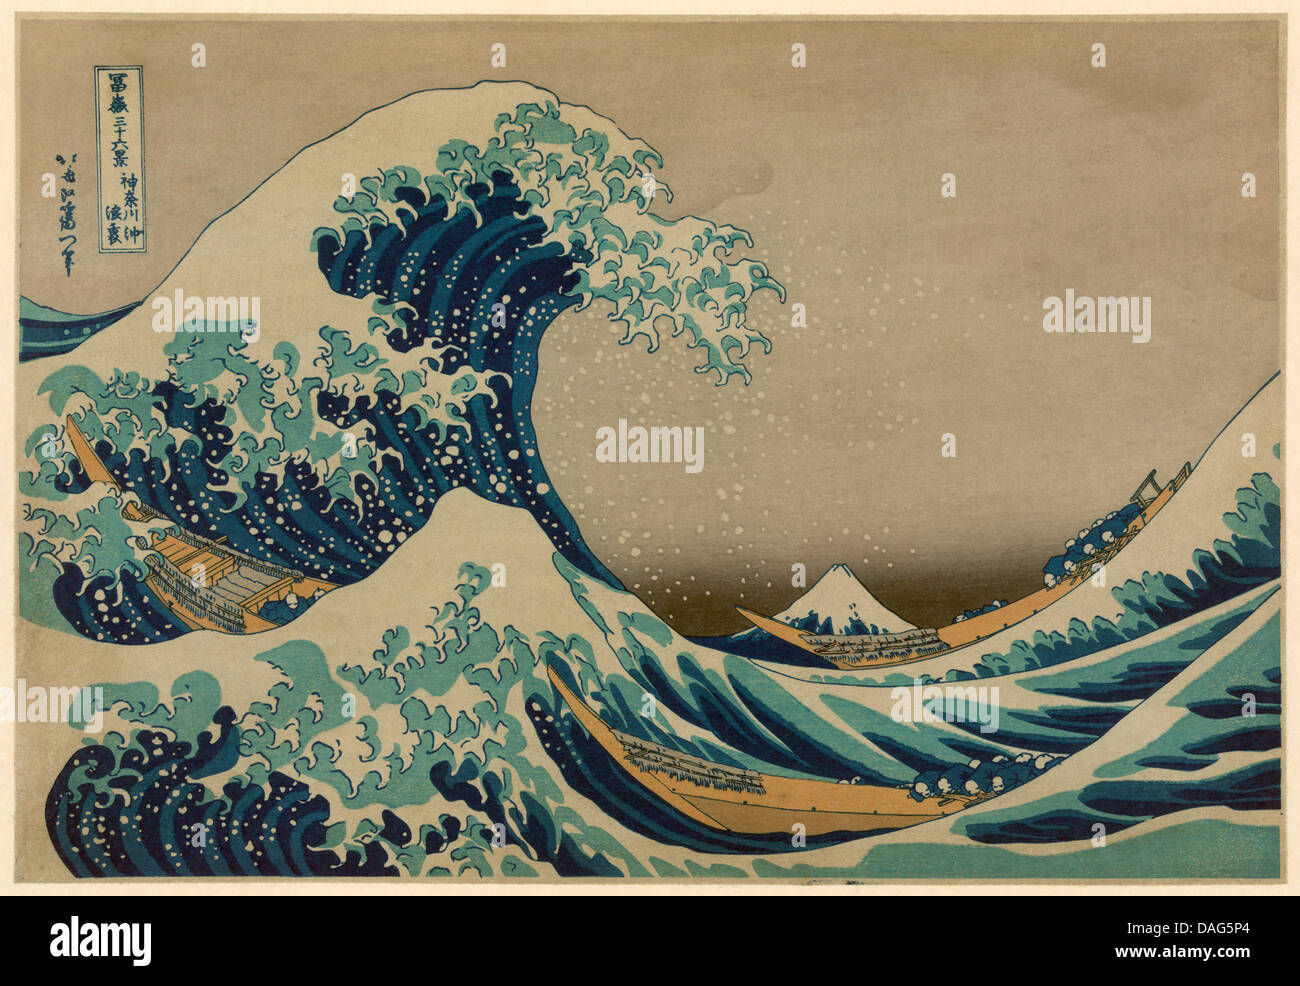 The Great Wave off Kanagawa, Hokusai Katsushika 1760-1849. Antique print - Stock Image